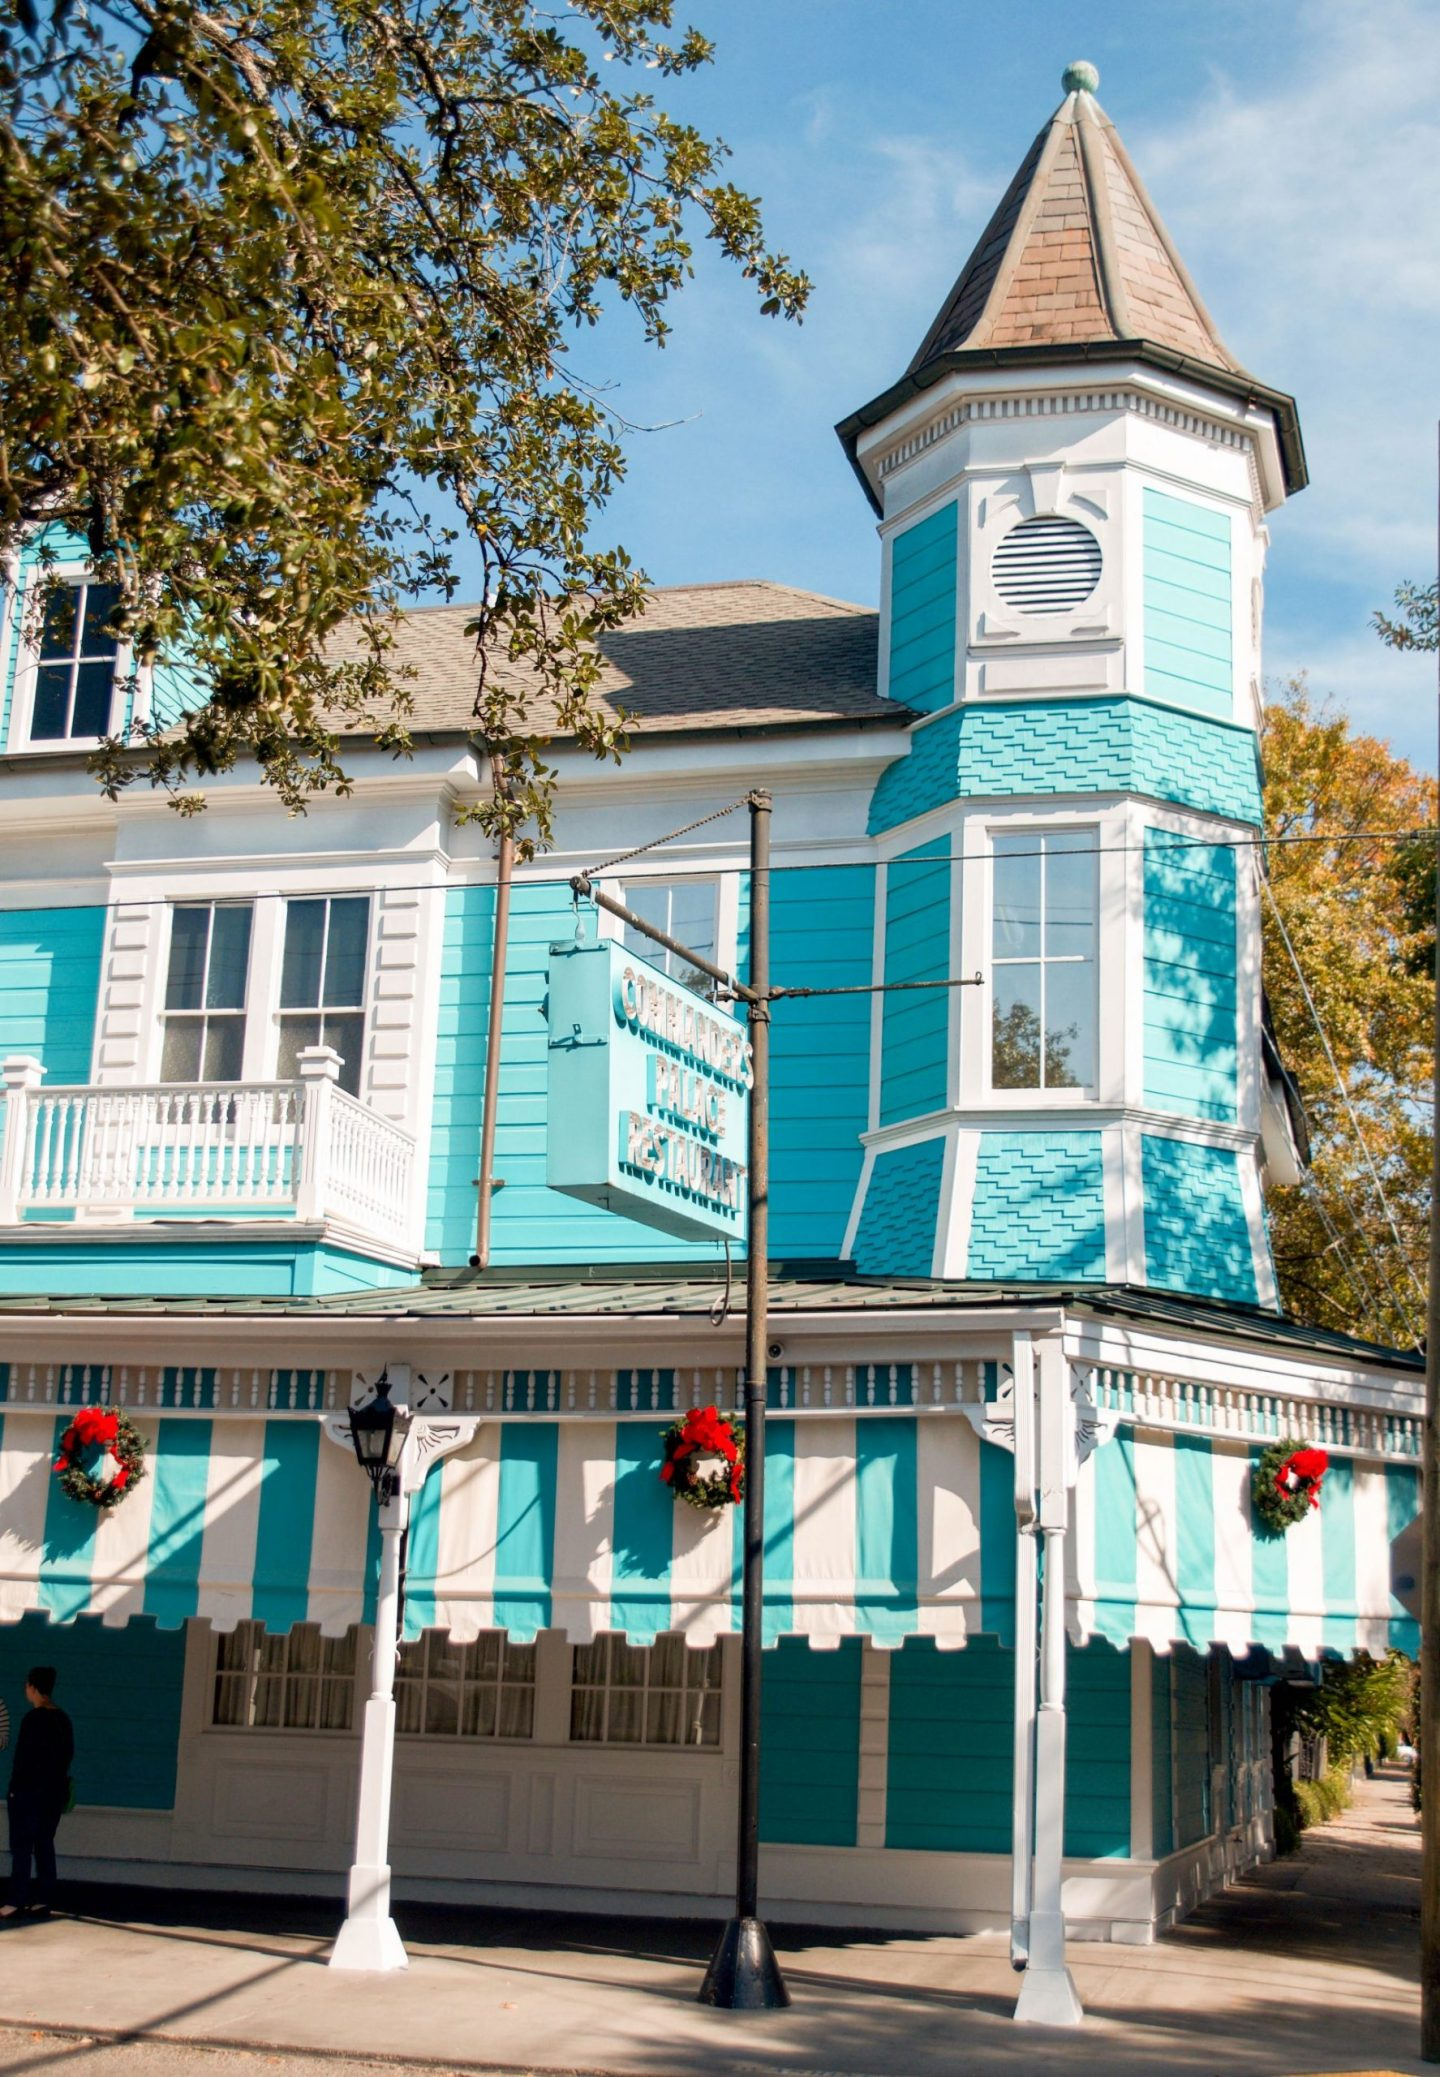 winter weekend in new orleans - new orleans in december - commander's palace at christmas